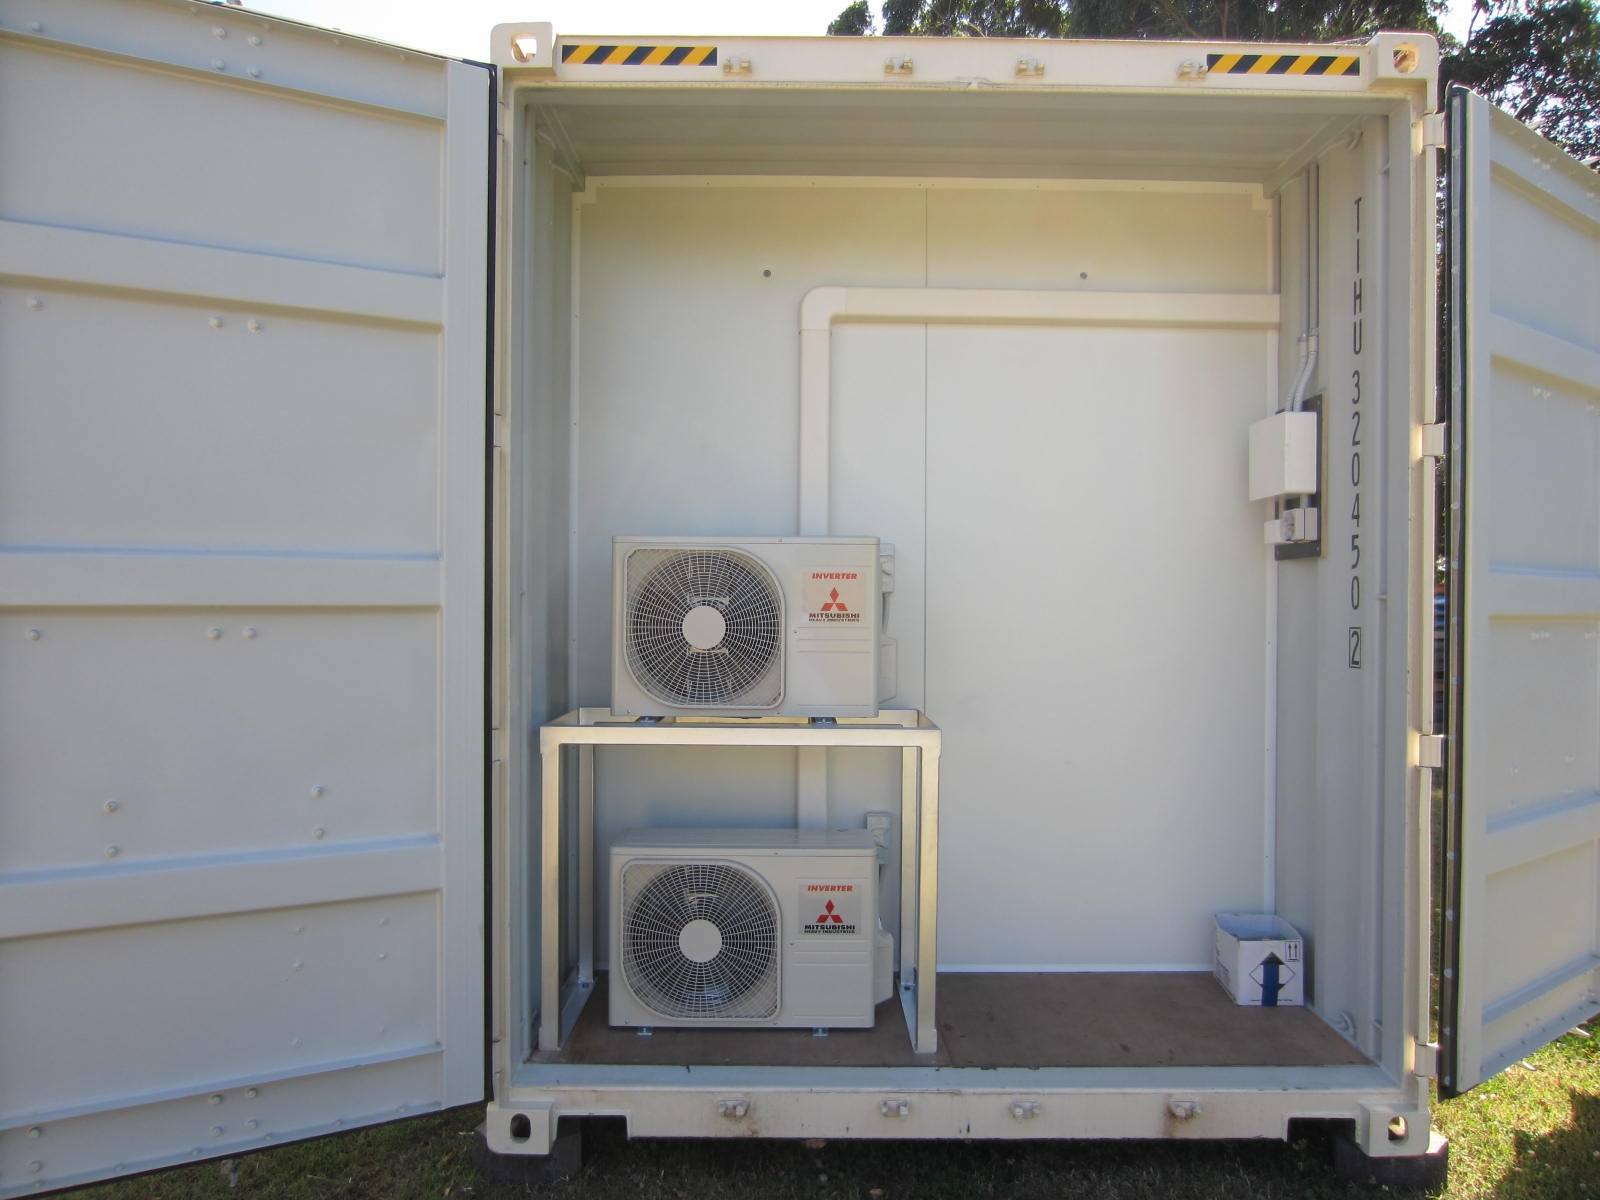 20' as new container modified into a 2 room unit with full electrical fit out, ACs, glass sliding doors and small storeroom behind container doors.